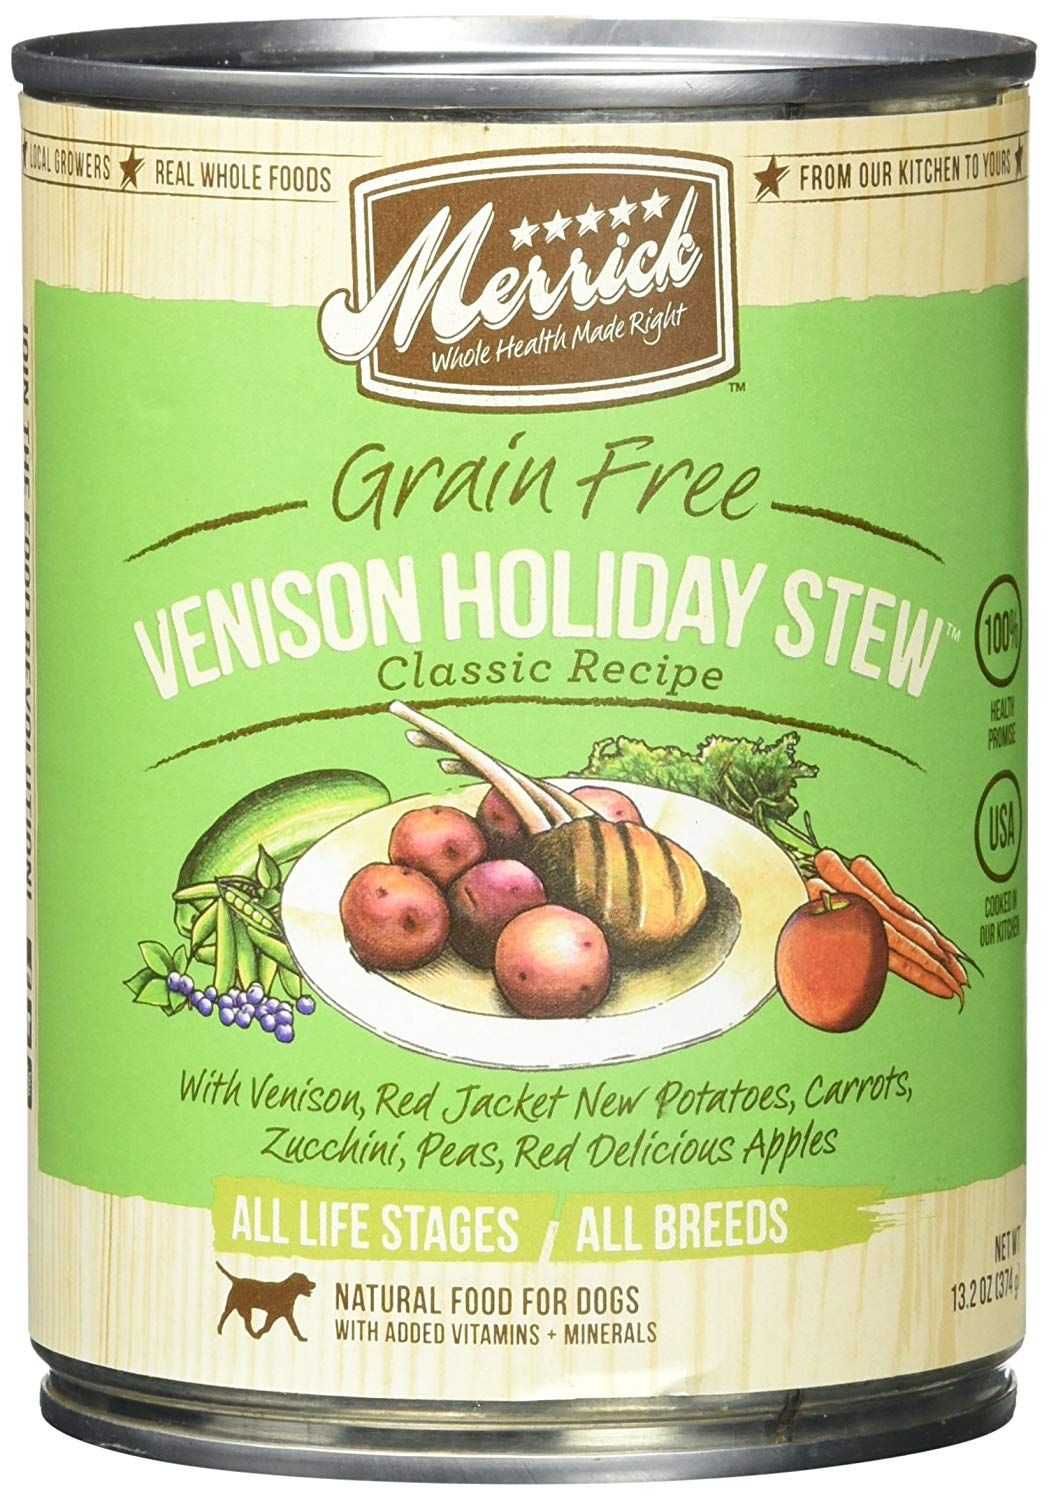 Merrick pet care venison holiday stew can for dog 132